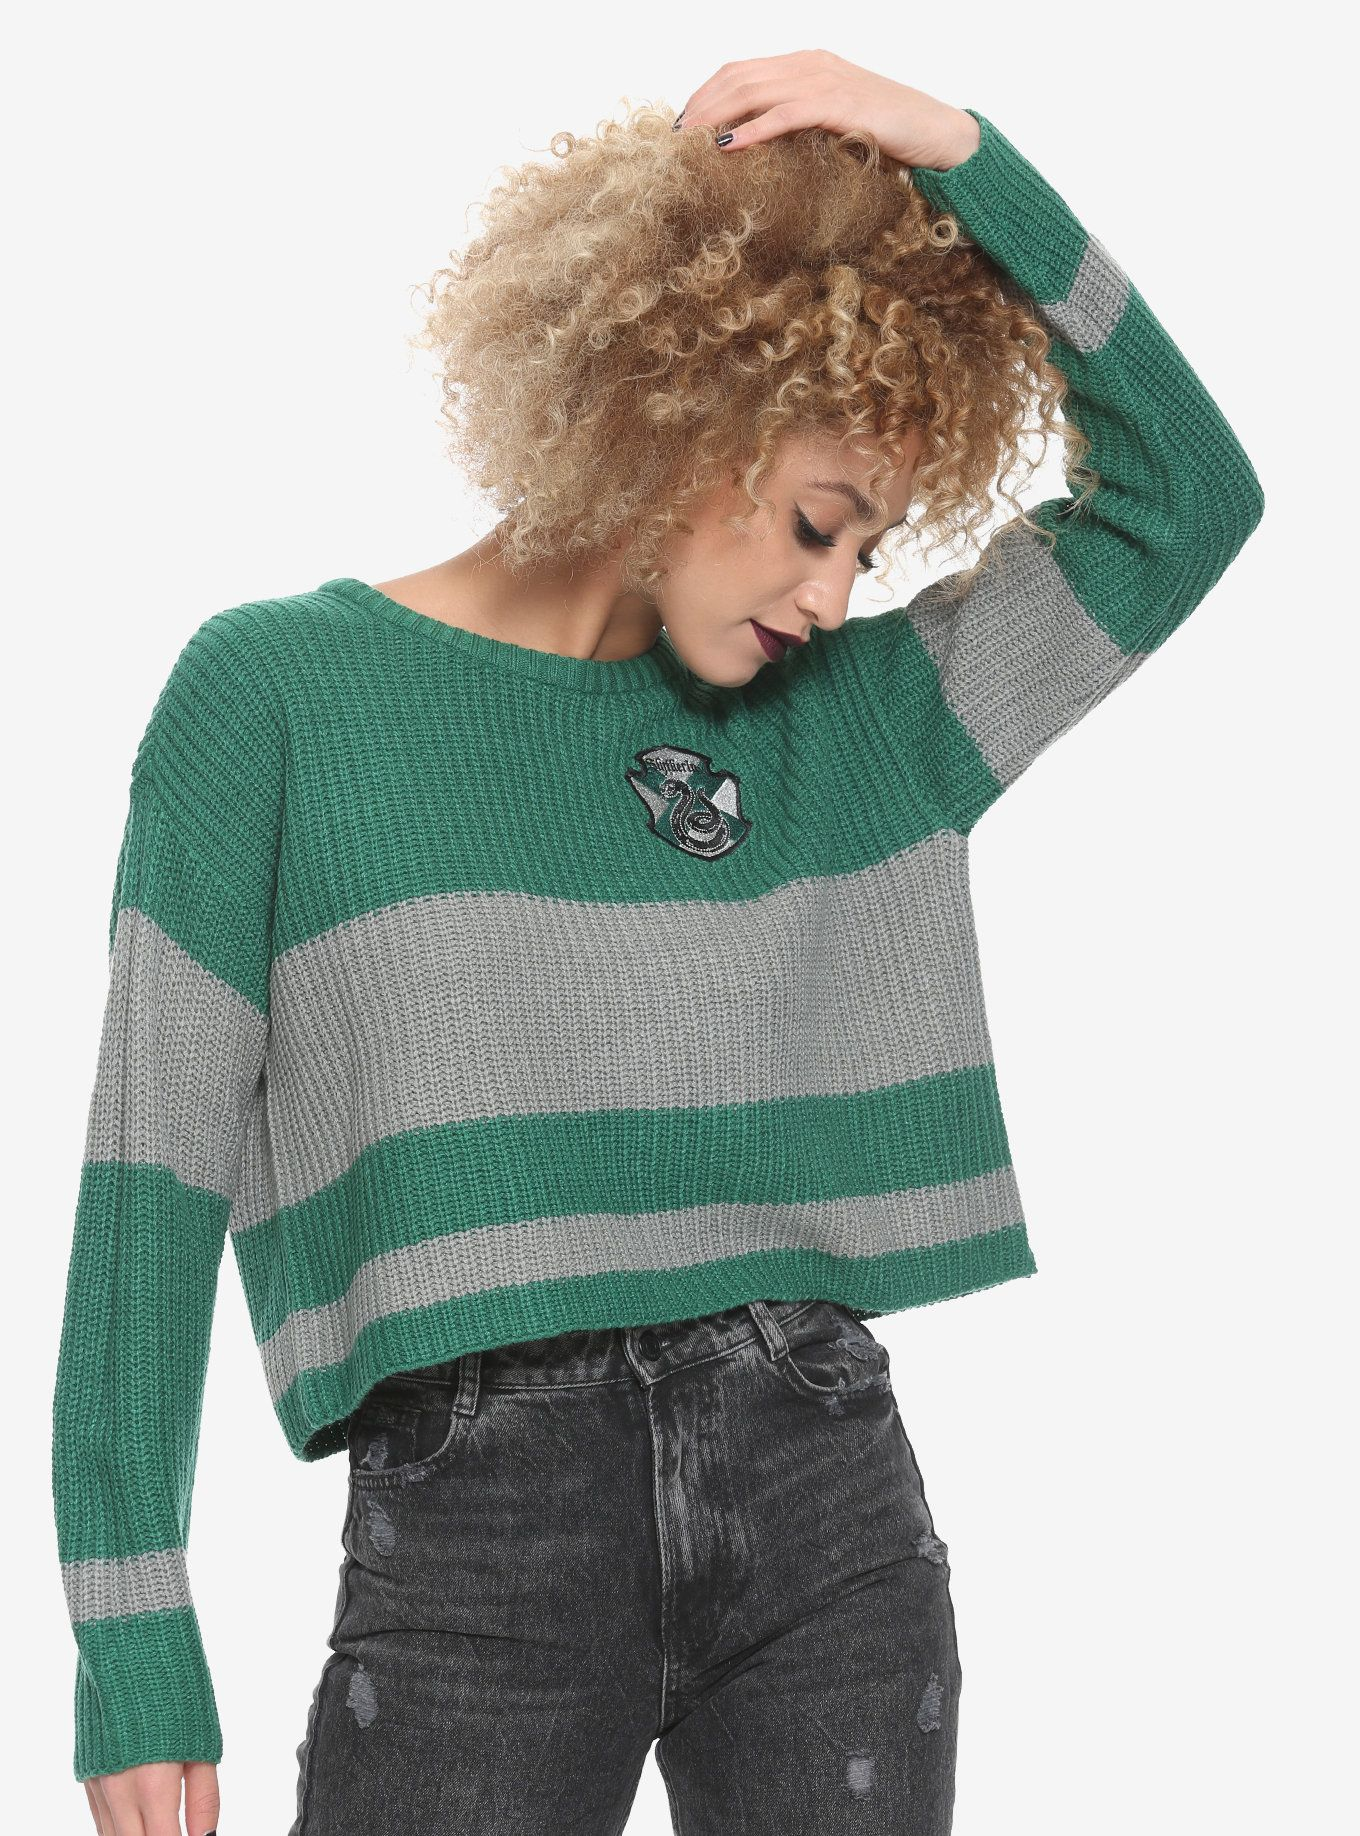 89a128fa8e4 Harry Potter Slytherin Girls Quidditch Sweater in 2019